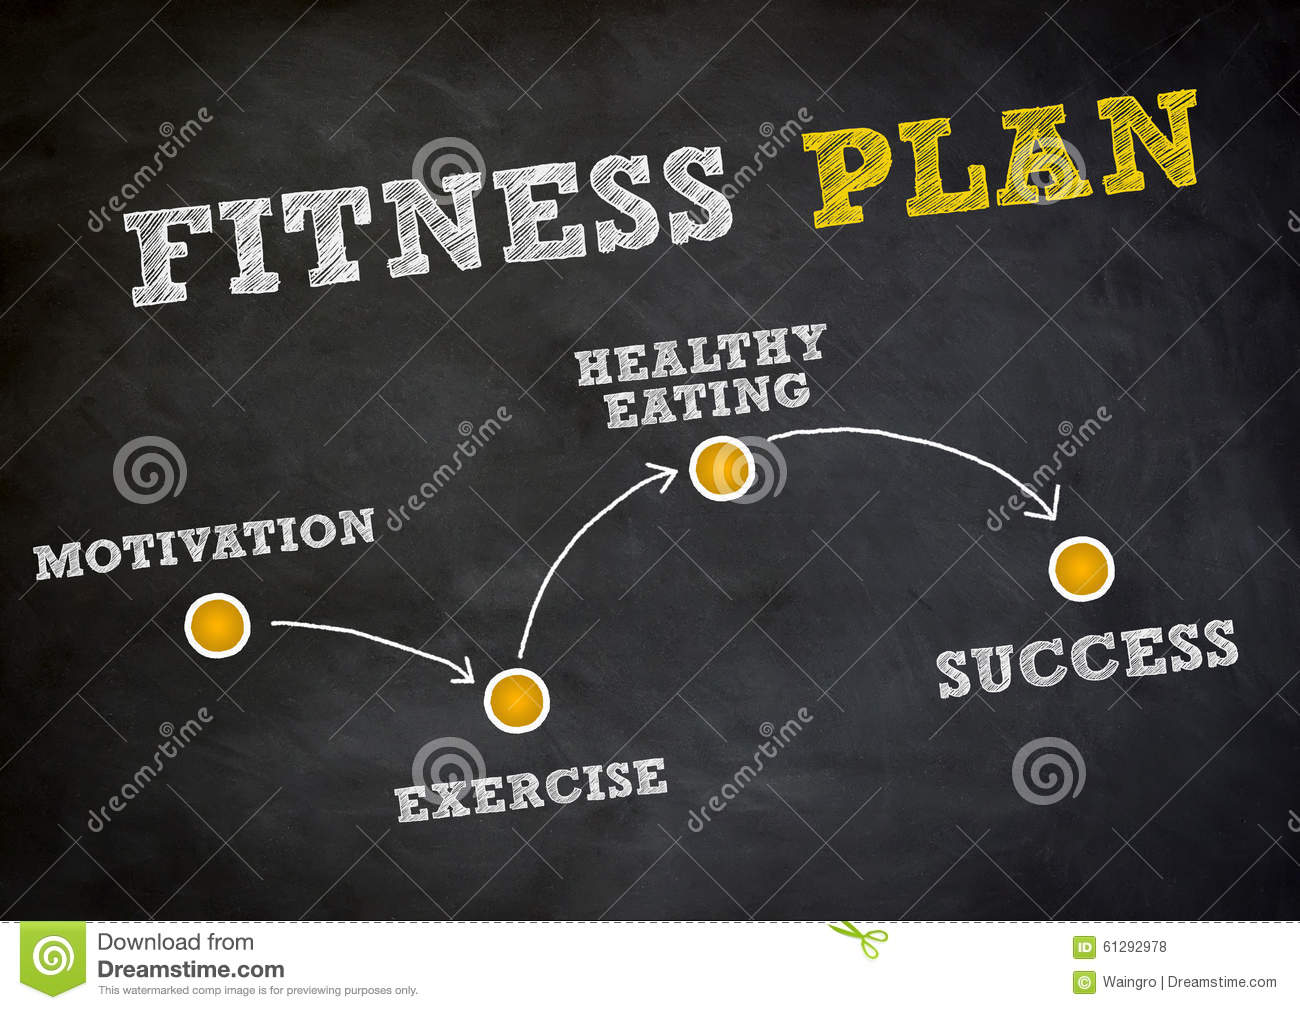 fitness-plan-chalkboard-illustrartion-concept-61292978.jpg